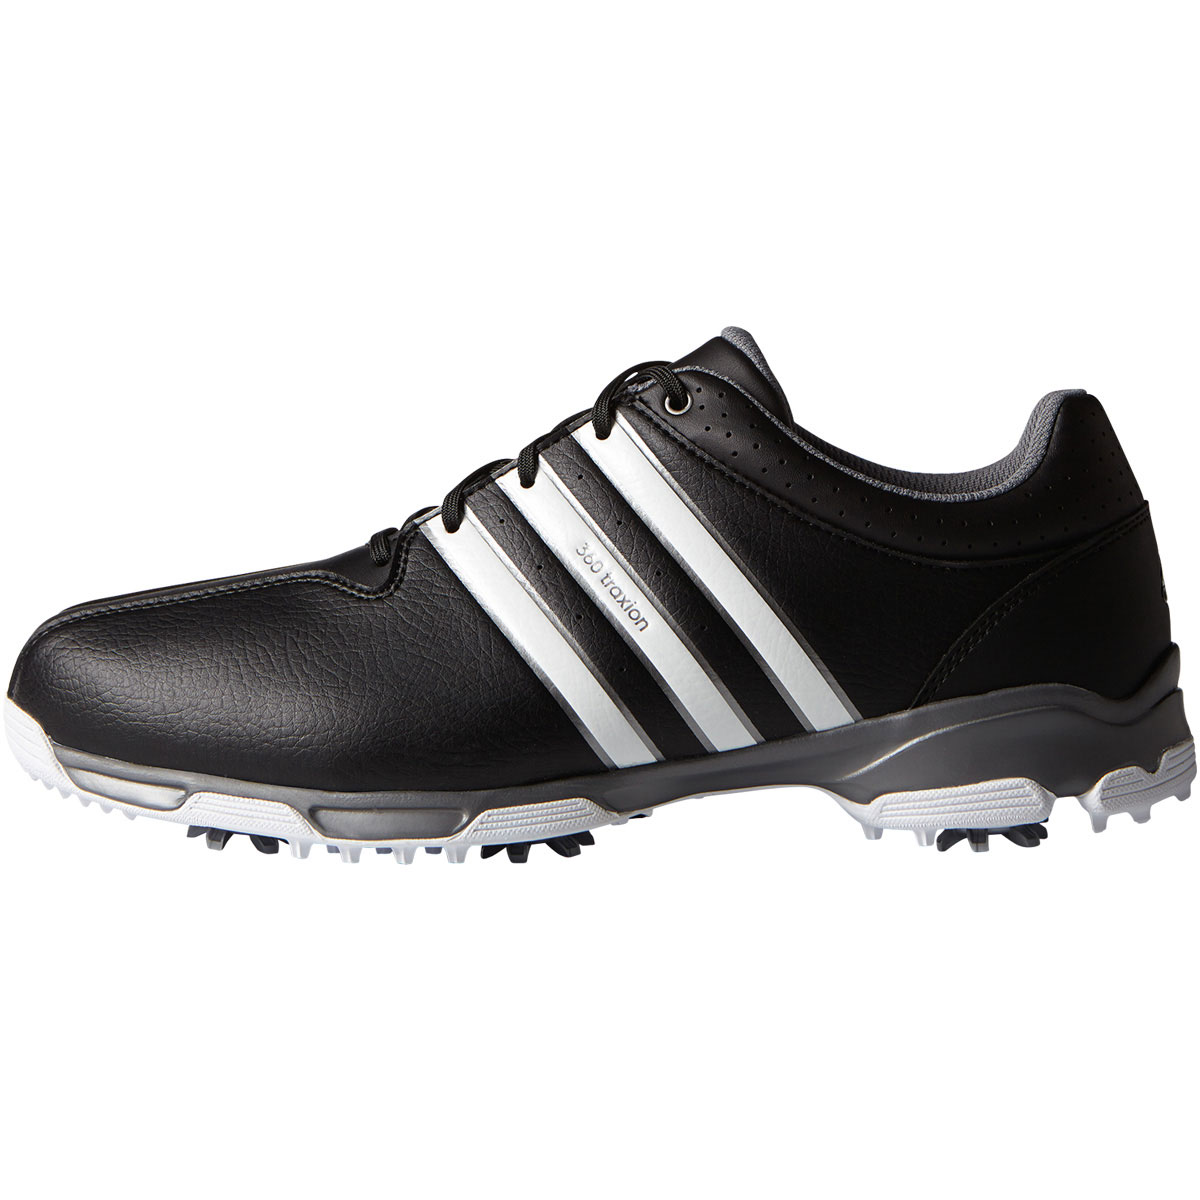 Adidas  Traxion Wd Golf Shoes